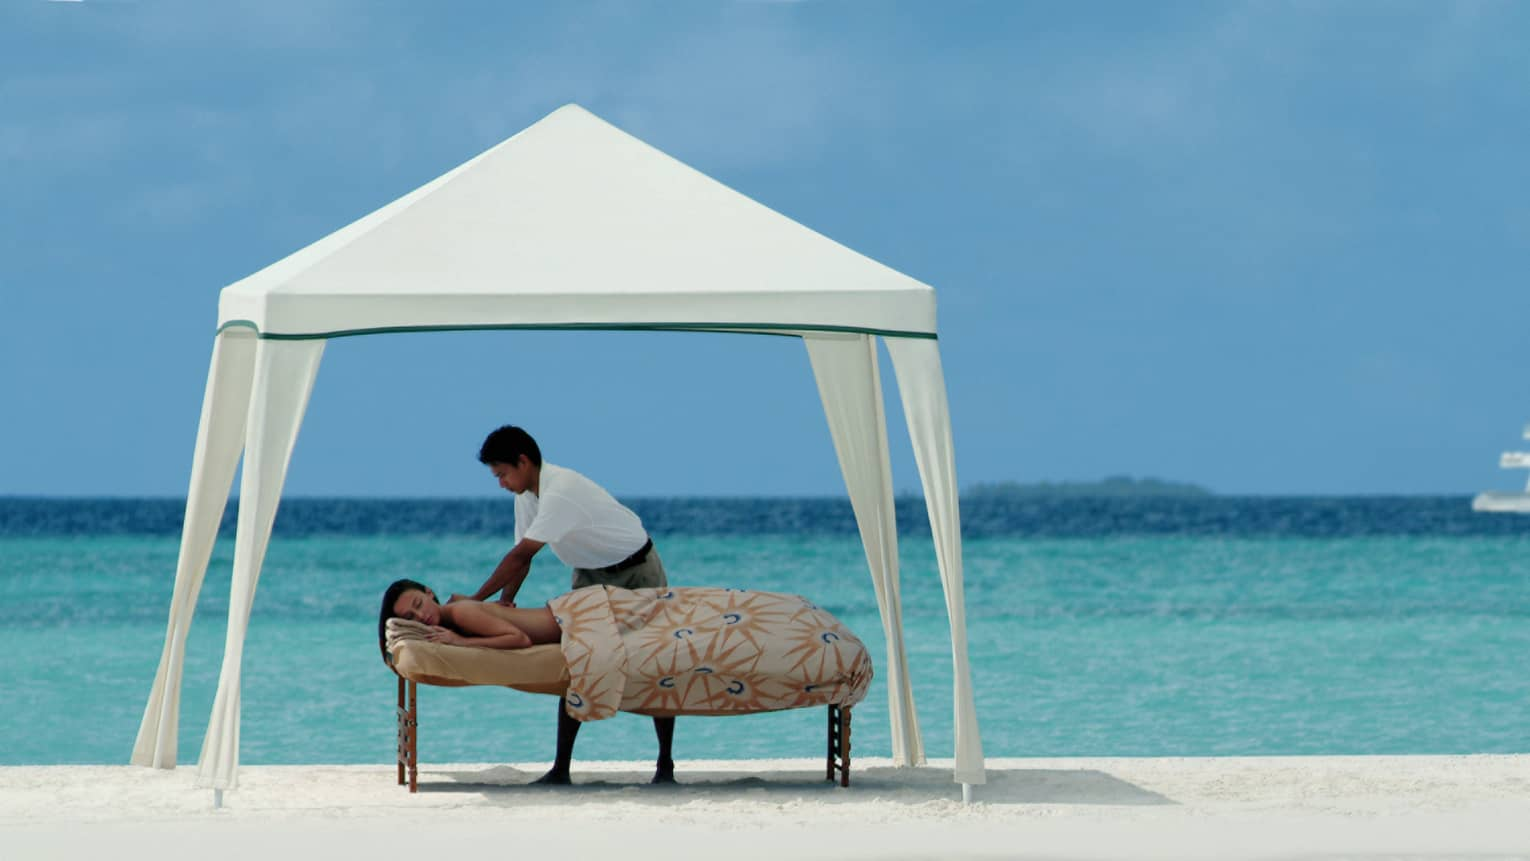 Masseuse gives woman massage on table under white canopy on atoll, yacht in background